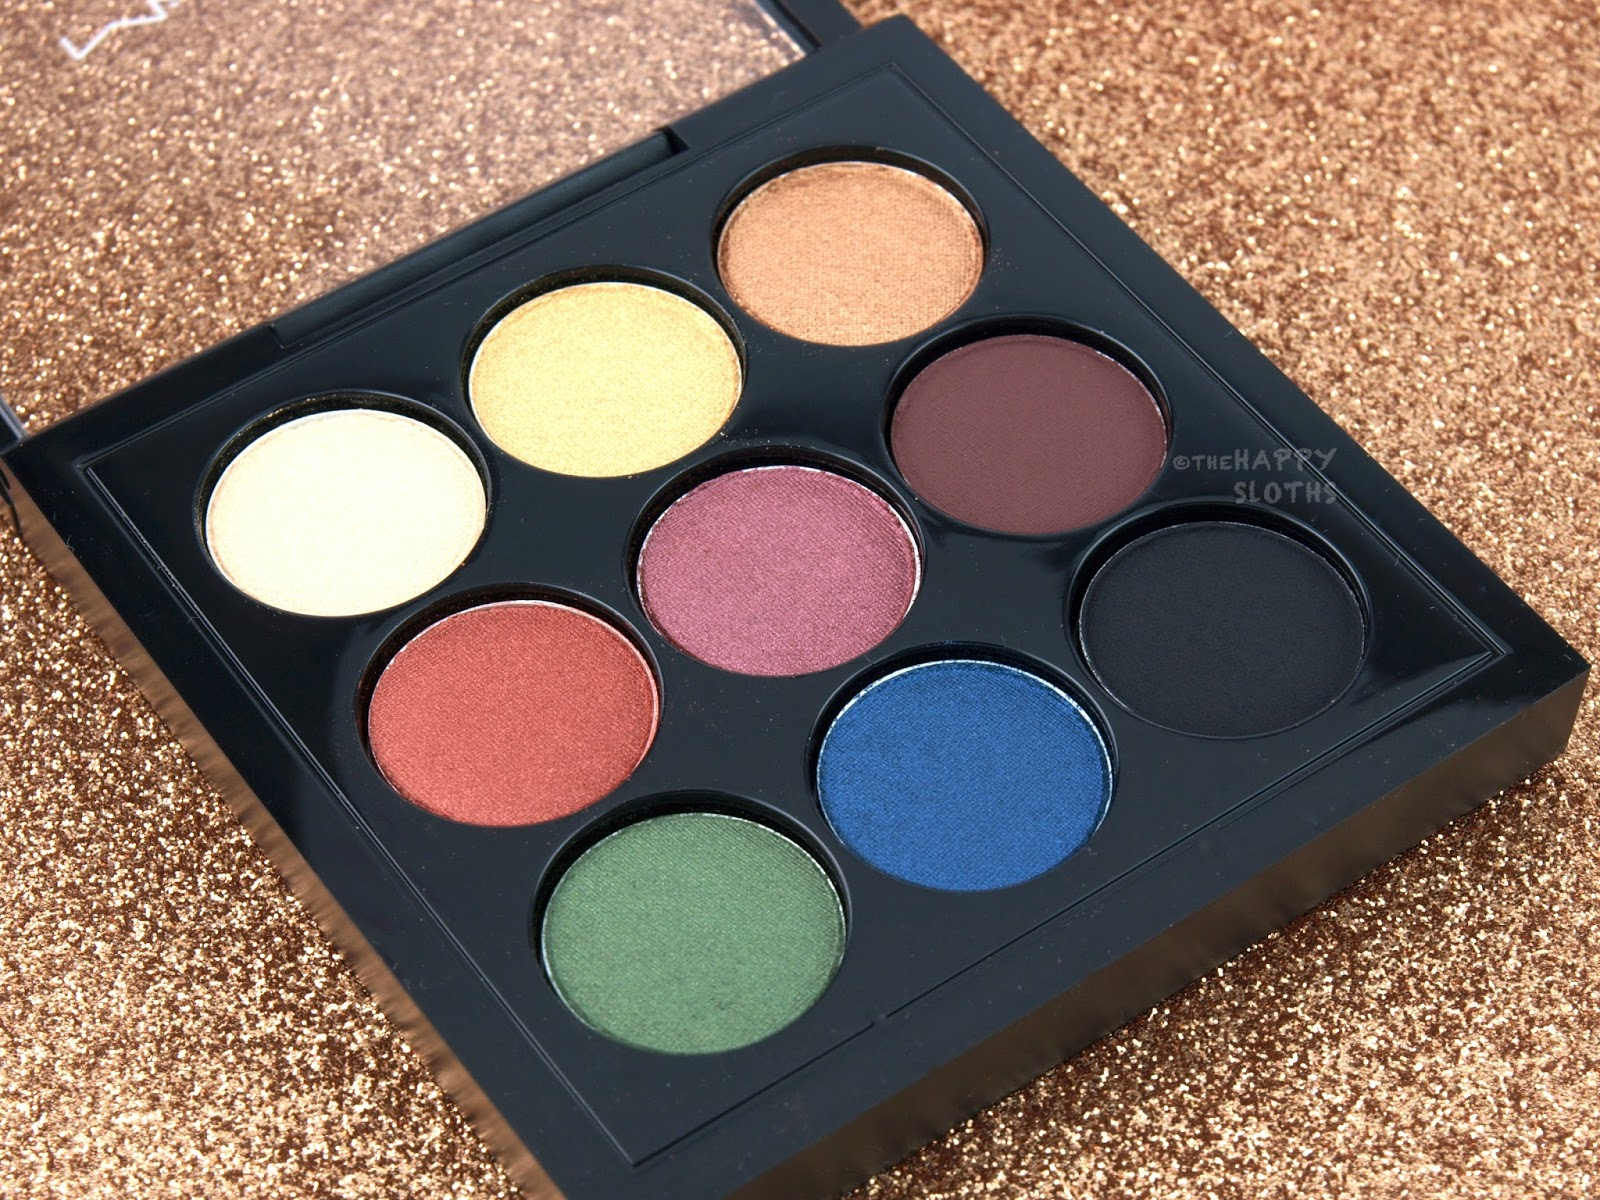 MAC Light Festival Eyeshadow X 9 Palette Review and Swatches